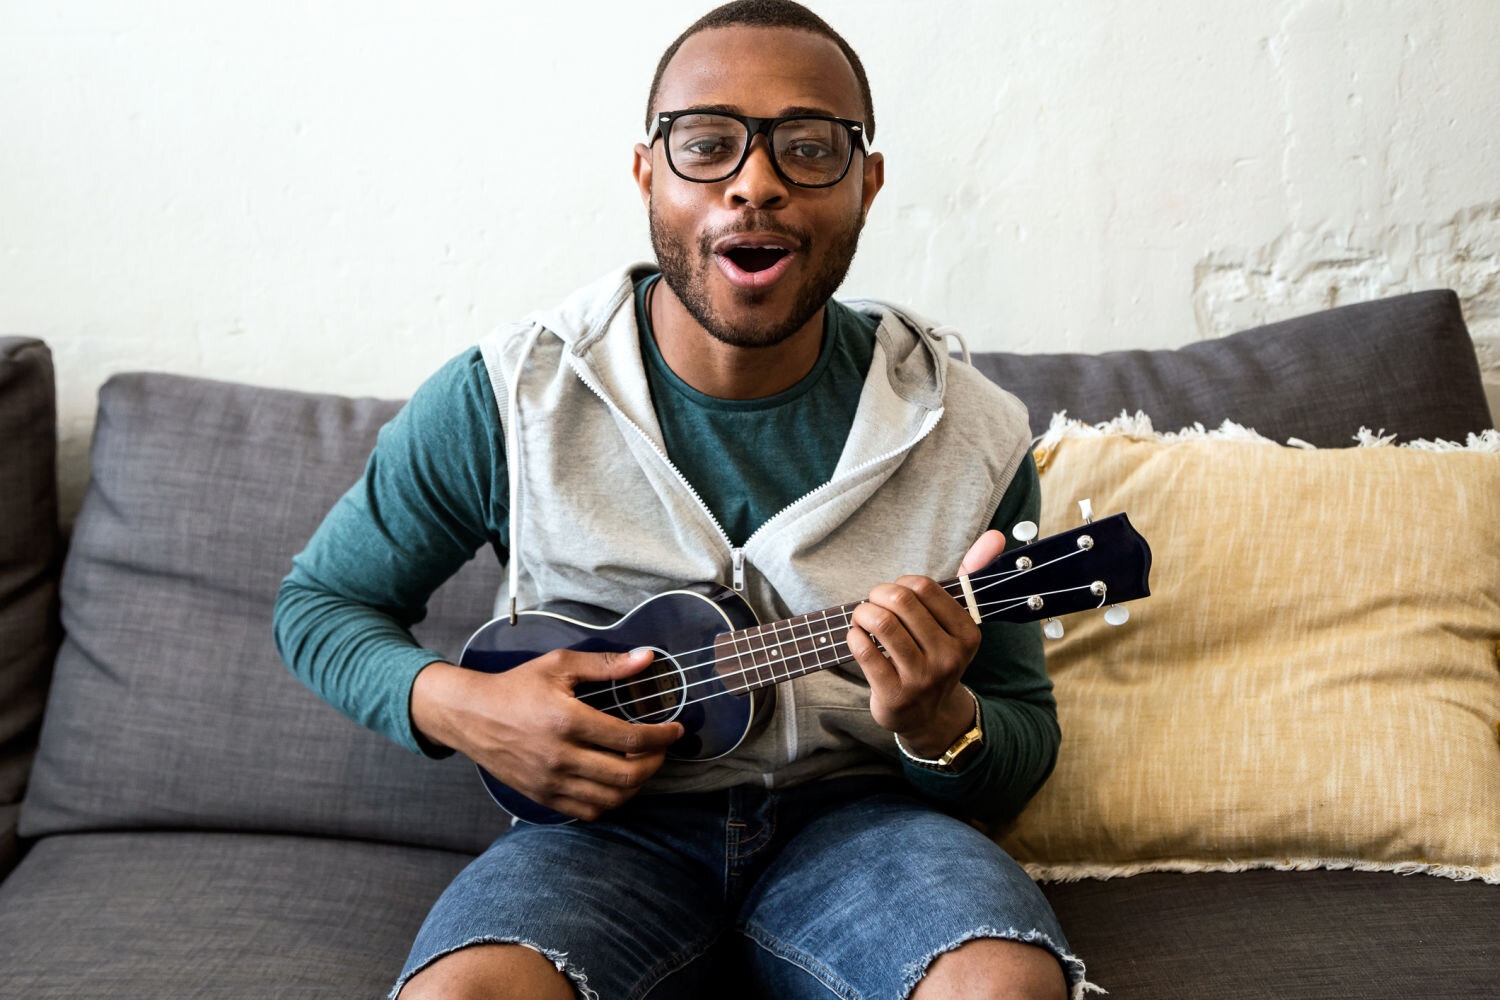 Ukulele Lessons   in Mendota Heights   for beginner, intermediate, and advanced students of all ages   CALL 651-263-9475 TO SCHEDULE YOUR FIRST LESSON   REQUEST INFO